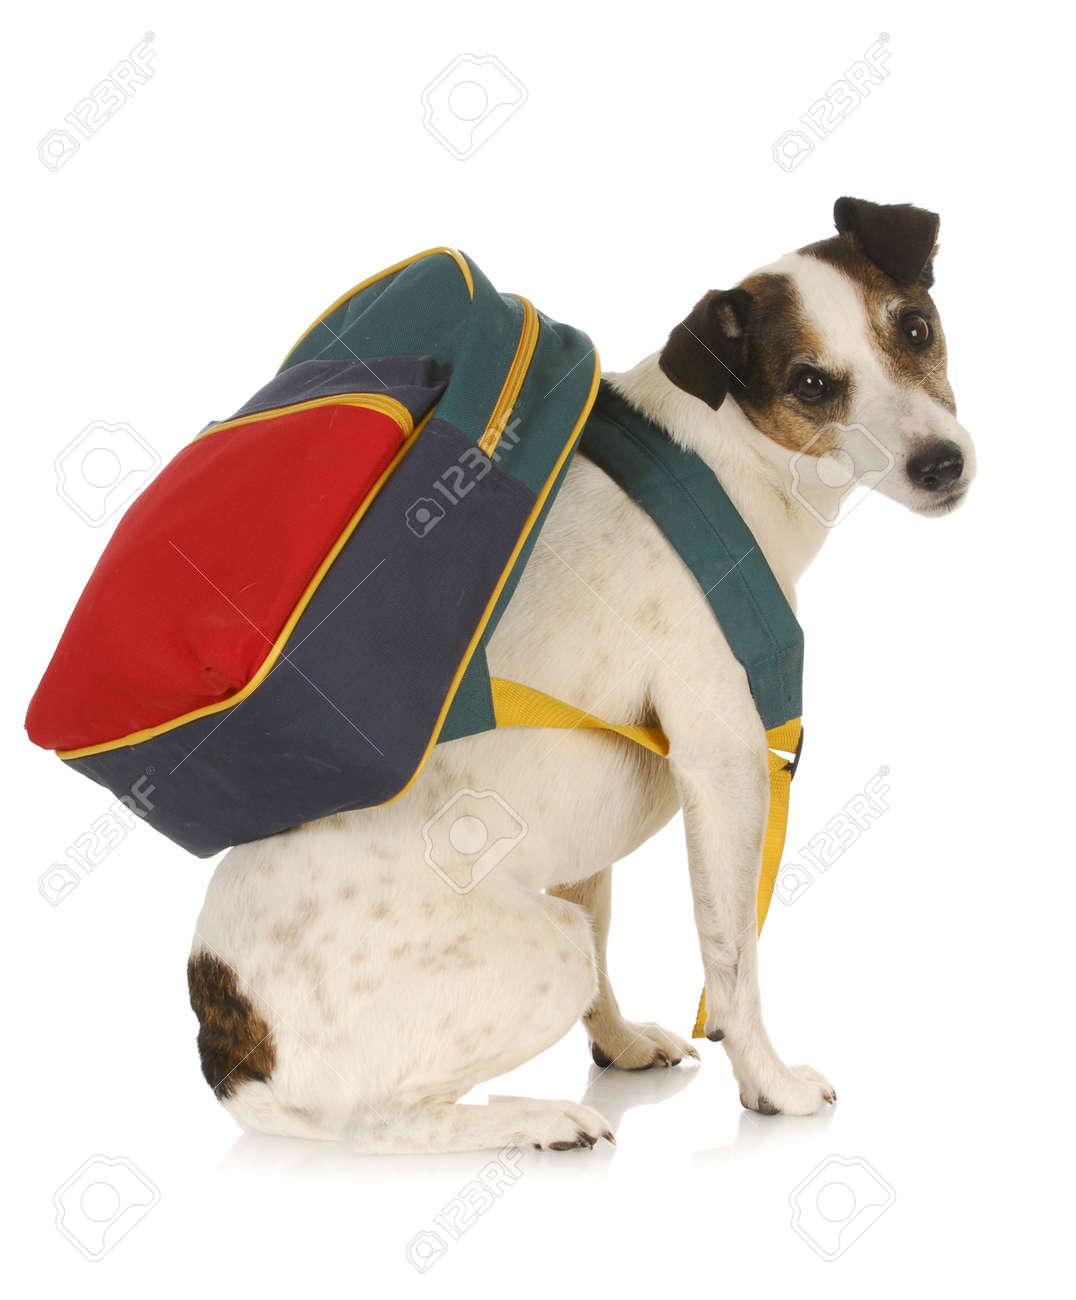 dog school - jack russel terrier wearing backpack on white background Stock Photo - 9663549